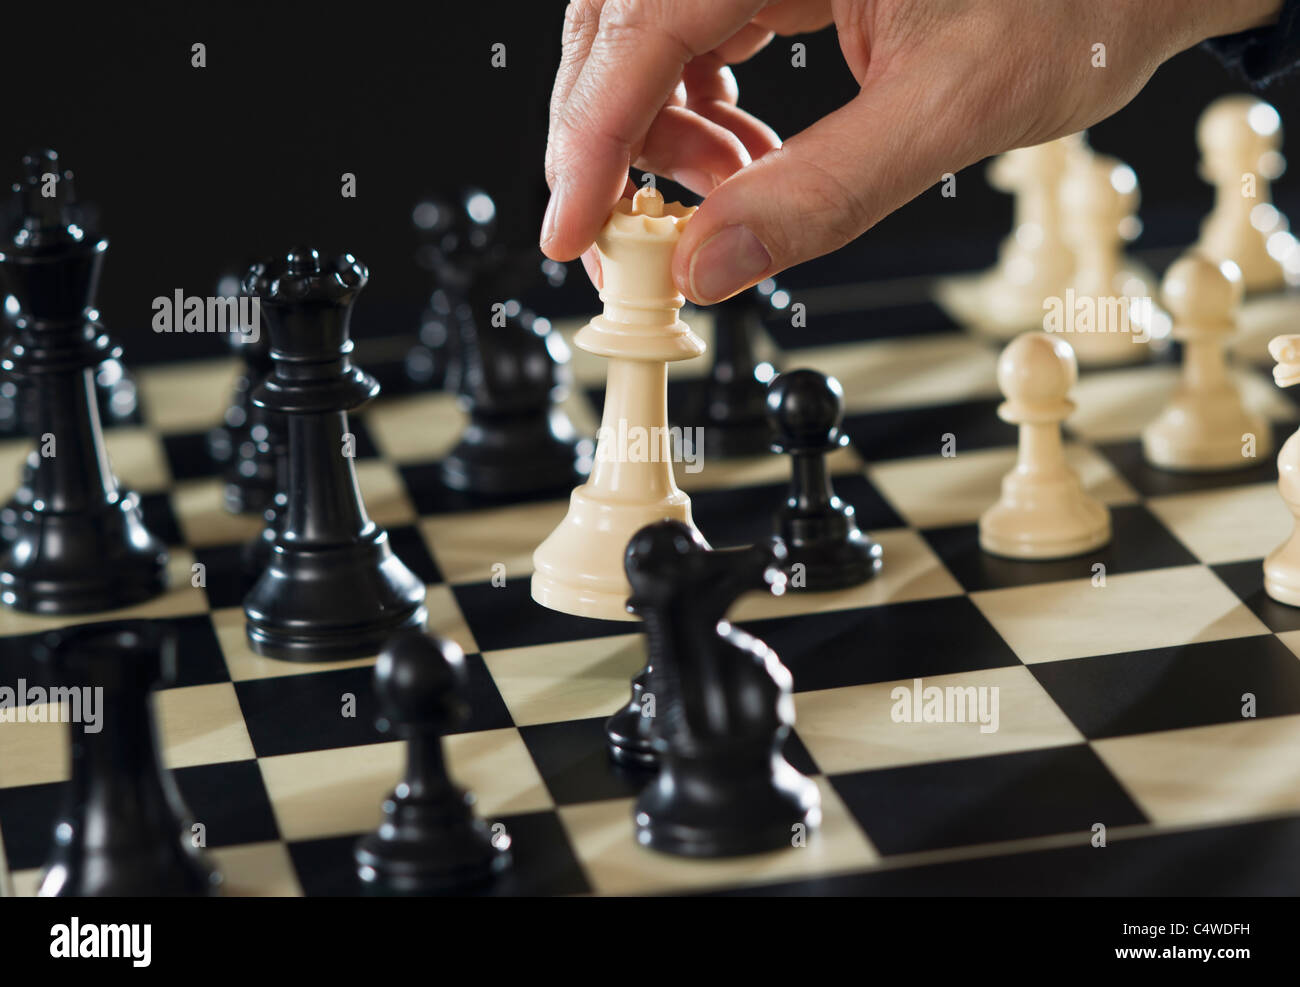 Close-up of man's hand playing chess - Stock Image